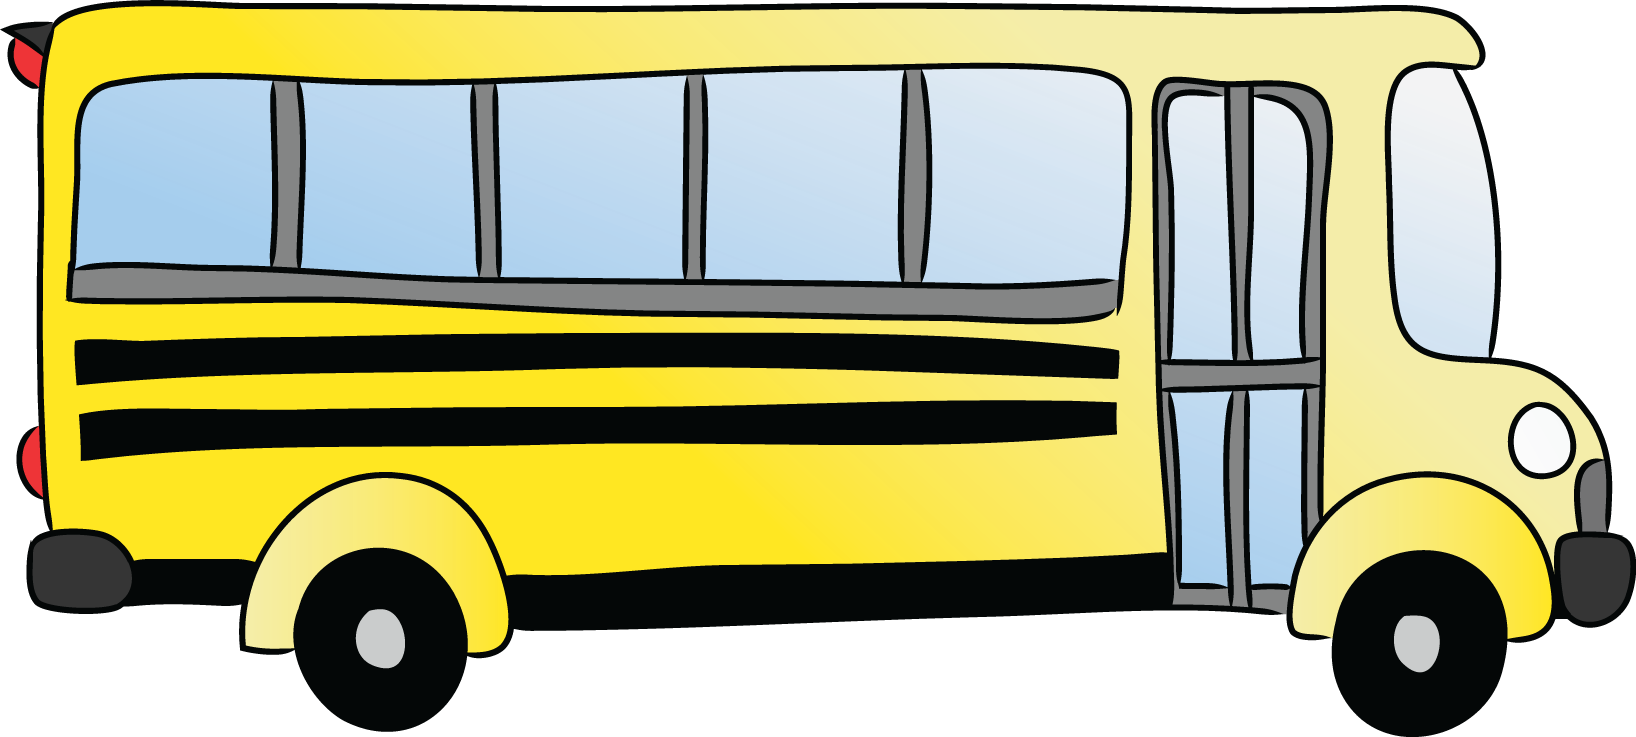 School bus free to use clipart 2